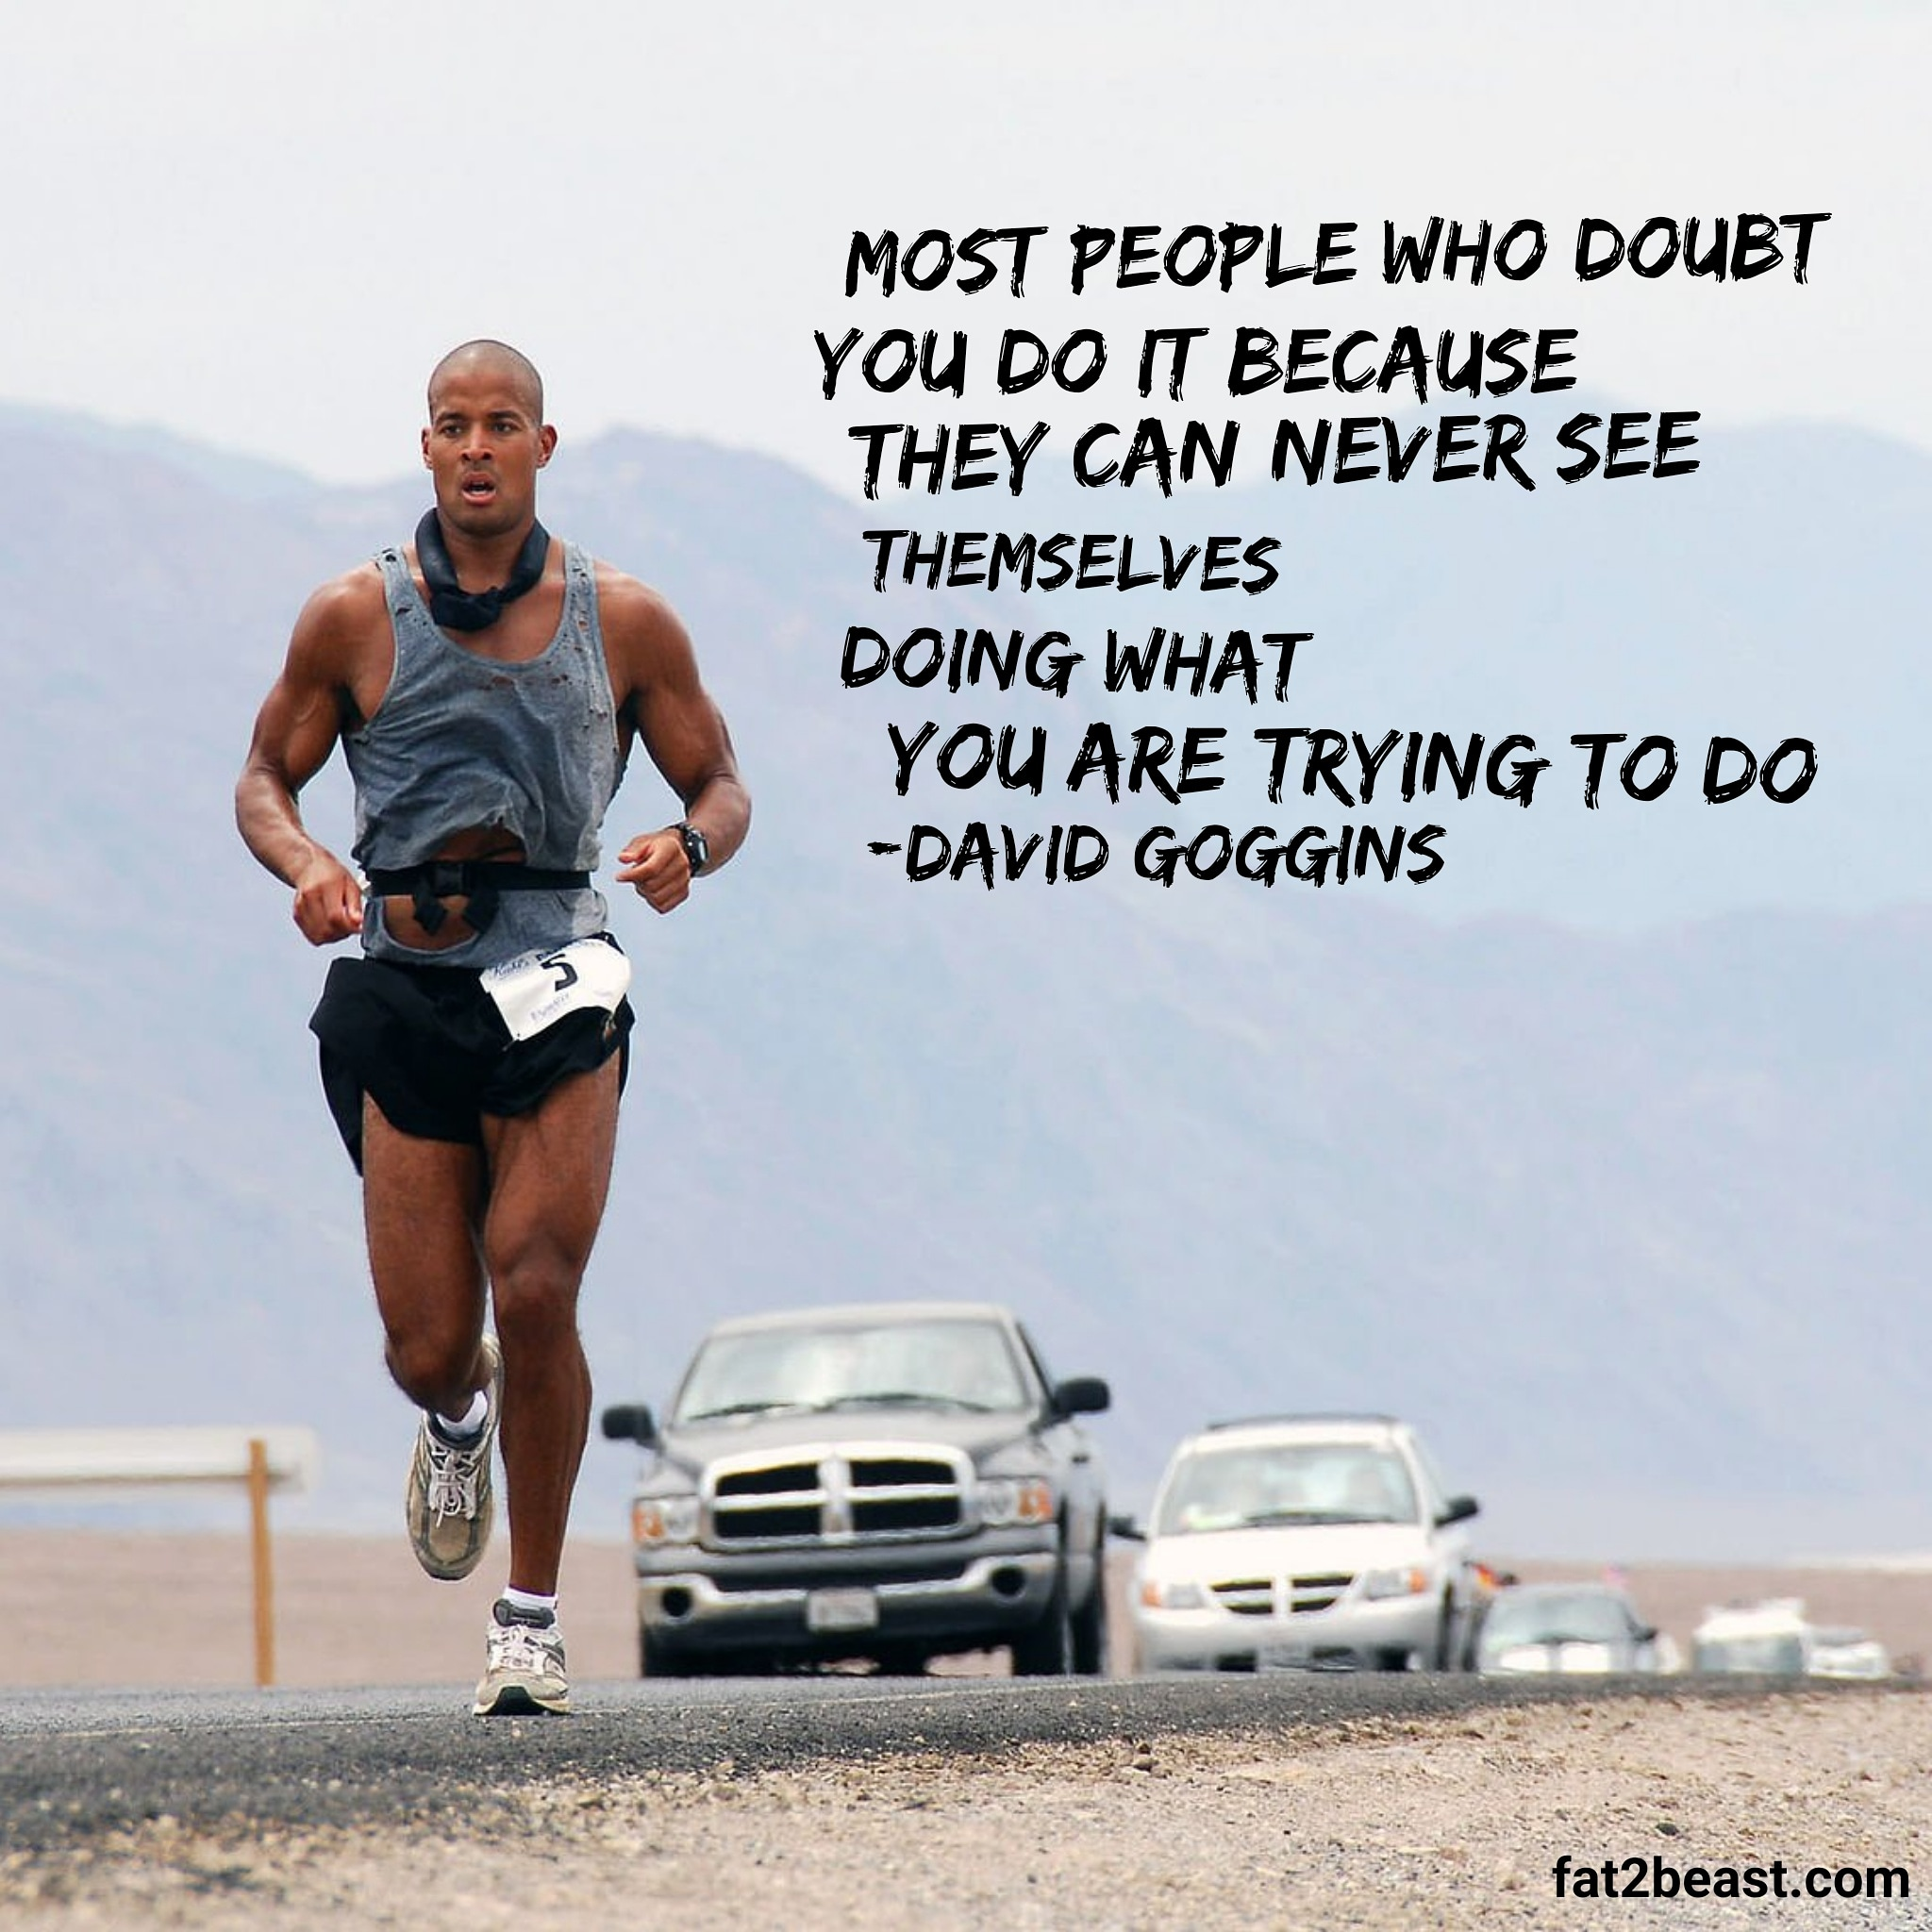 [IMAGE]Most people who doubt you do it because they can never see themselves doing what you are trying to do